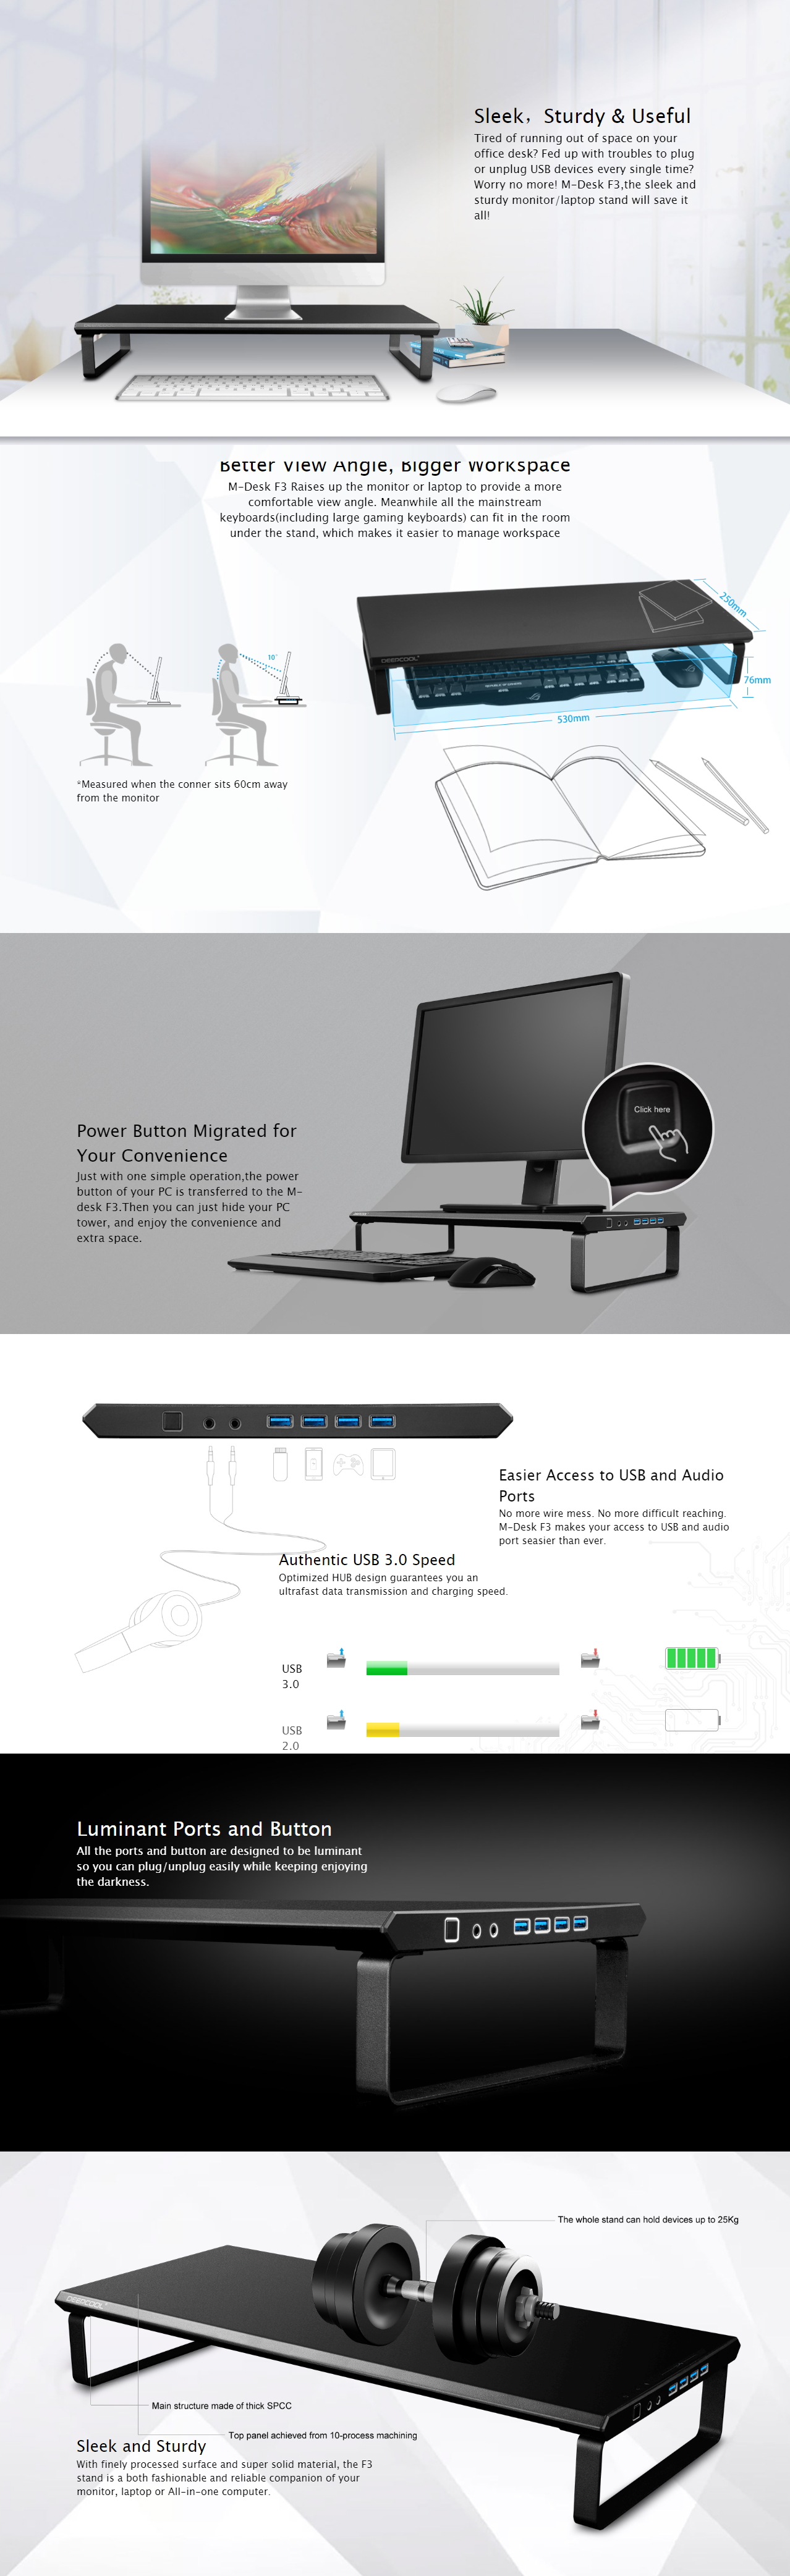 A large marketing image providing additional information about the product Deepcool M-DESK F3 Monitor Stand w/ USB 3.0 Hub - Additional alt info not provided